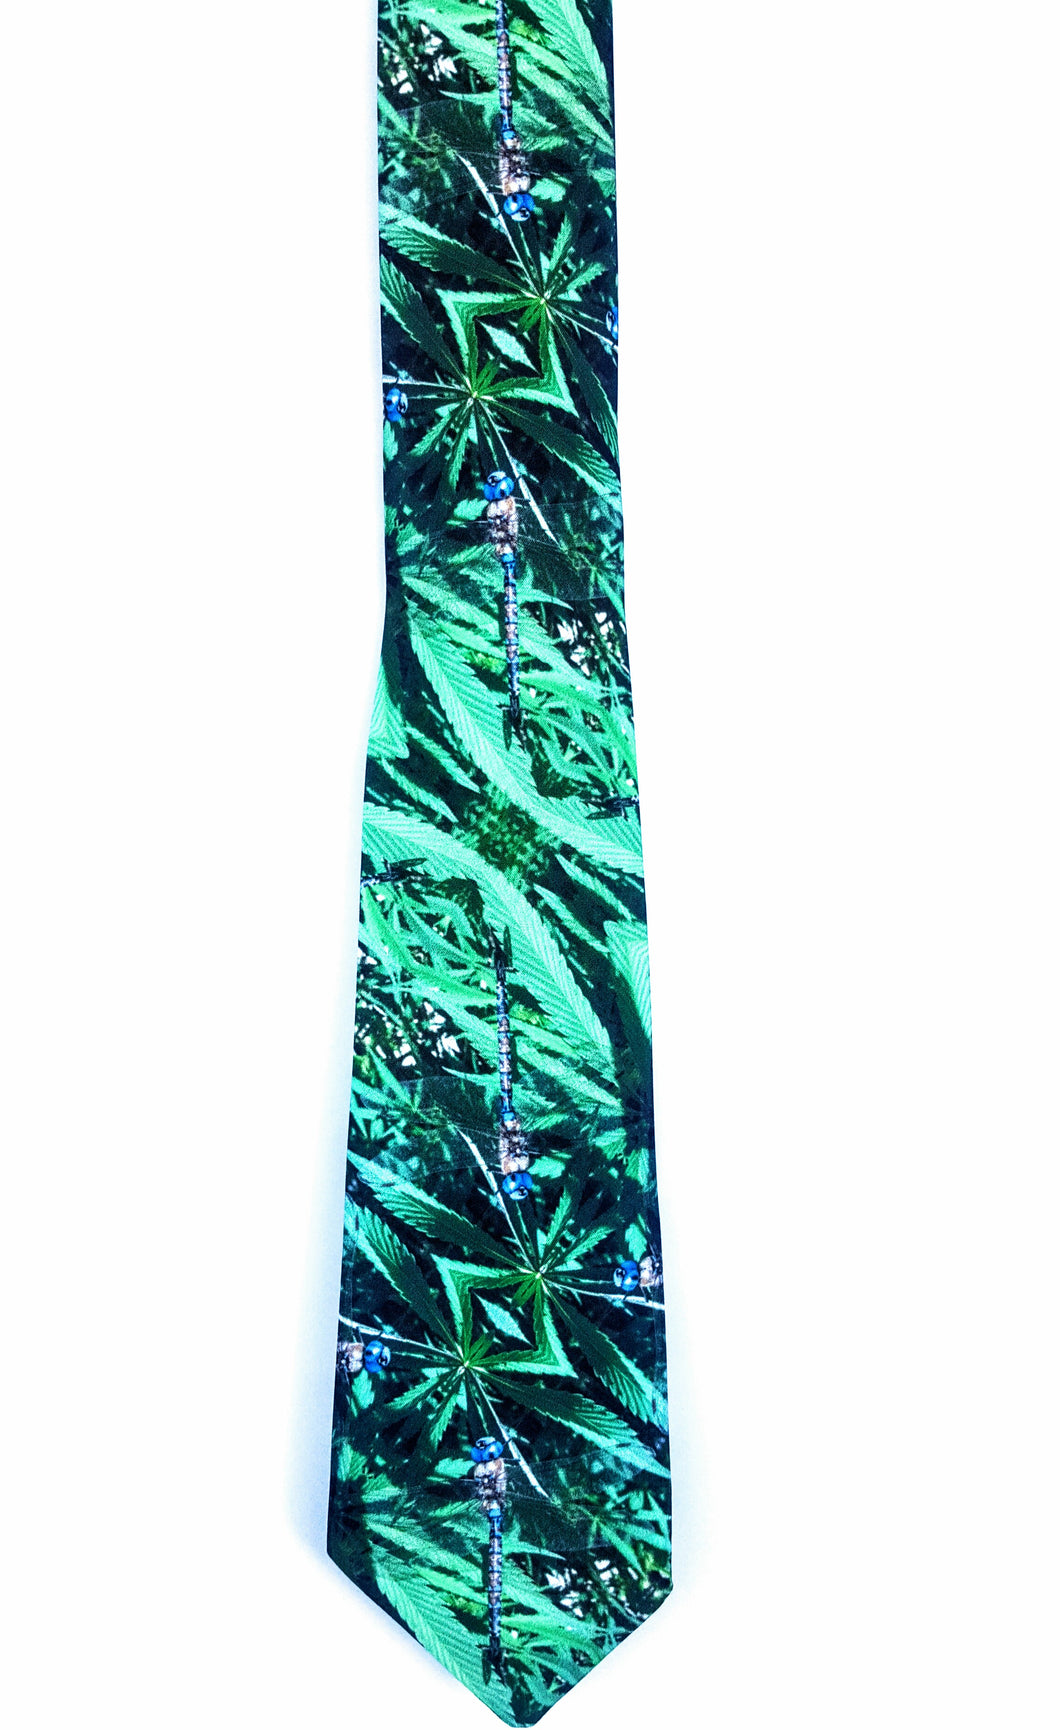 Mens Ties, Mens Neckties, Ties, Wedding Ties, Suit Ties for Women ...